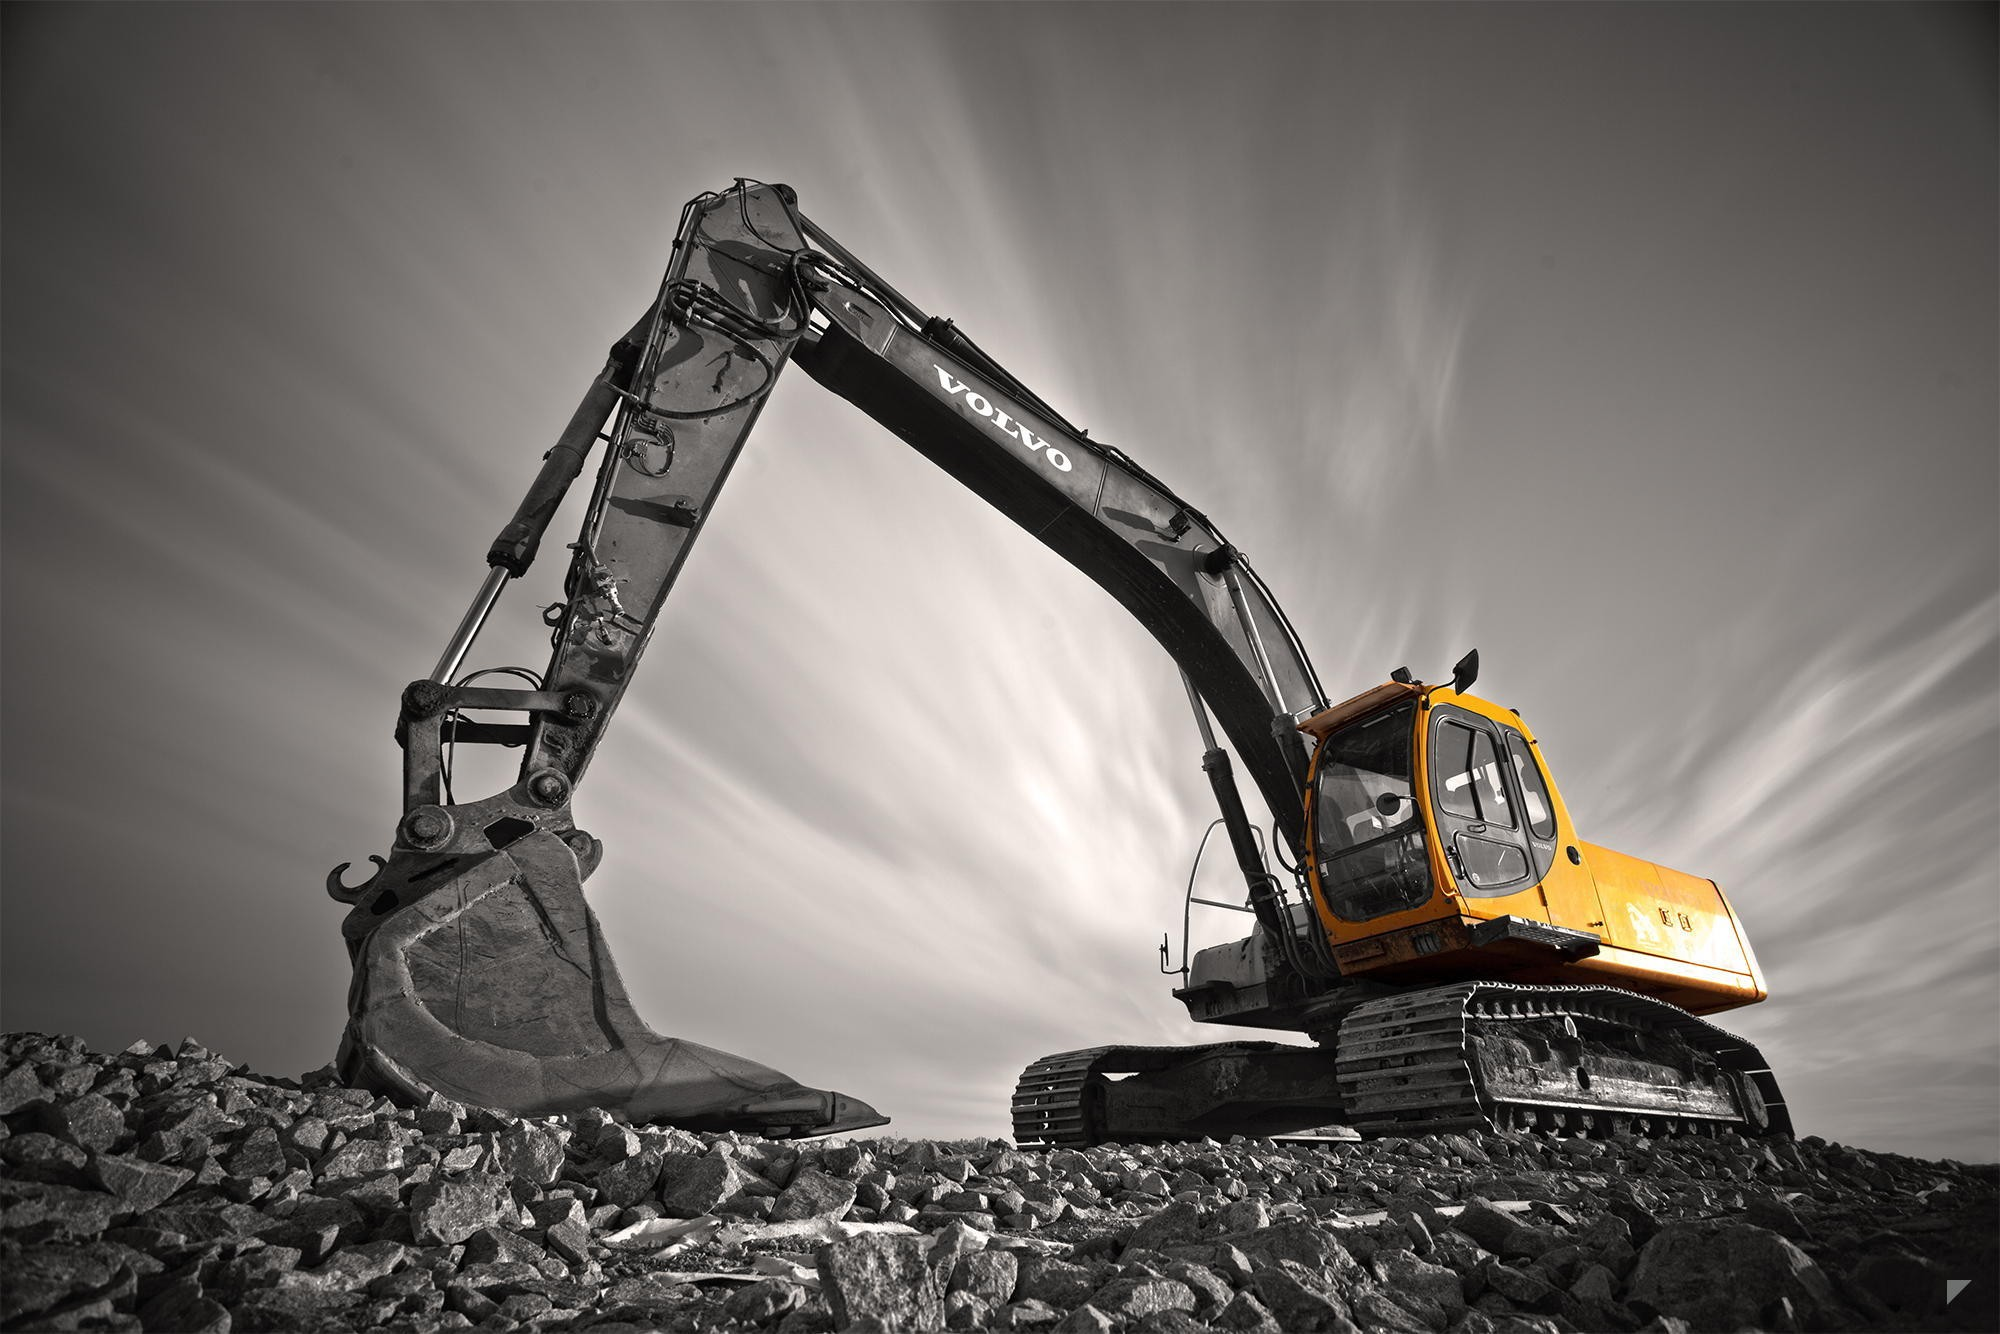 8 excavator hd wallpapers backgrounds wallpaper abyss - Mining images hd ...